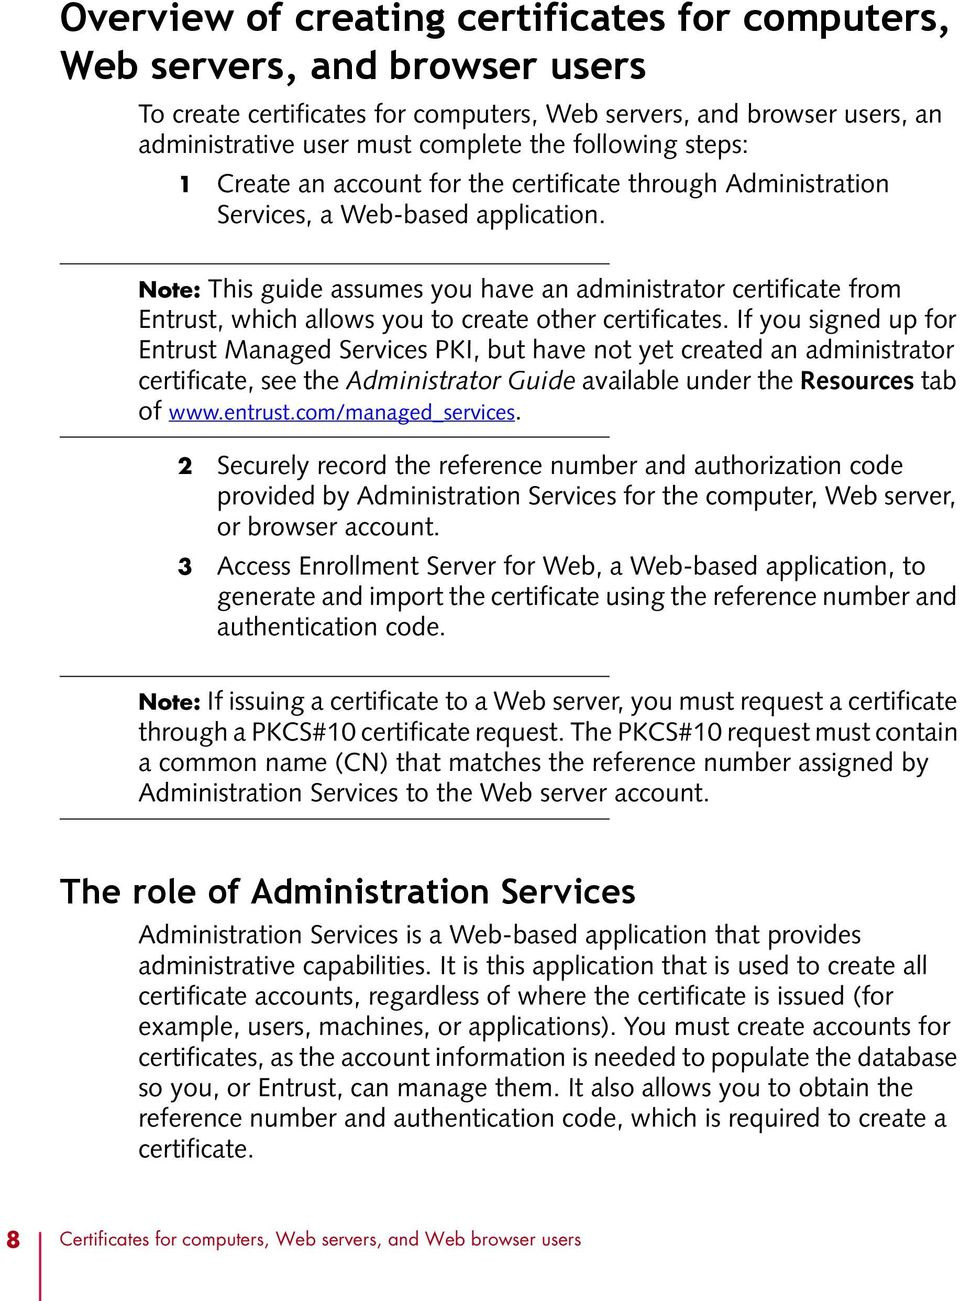 Note: This guide assumes you have an administrator certificate from Entrust, which allows you to create other certificates.